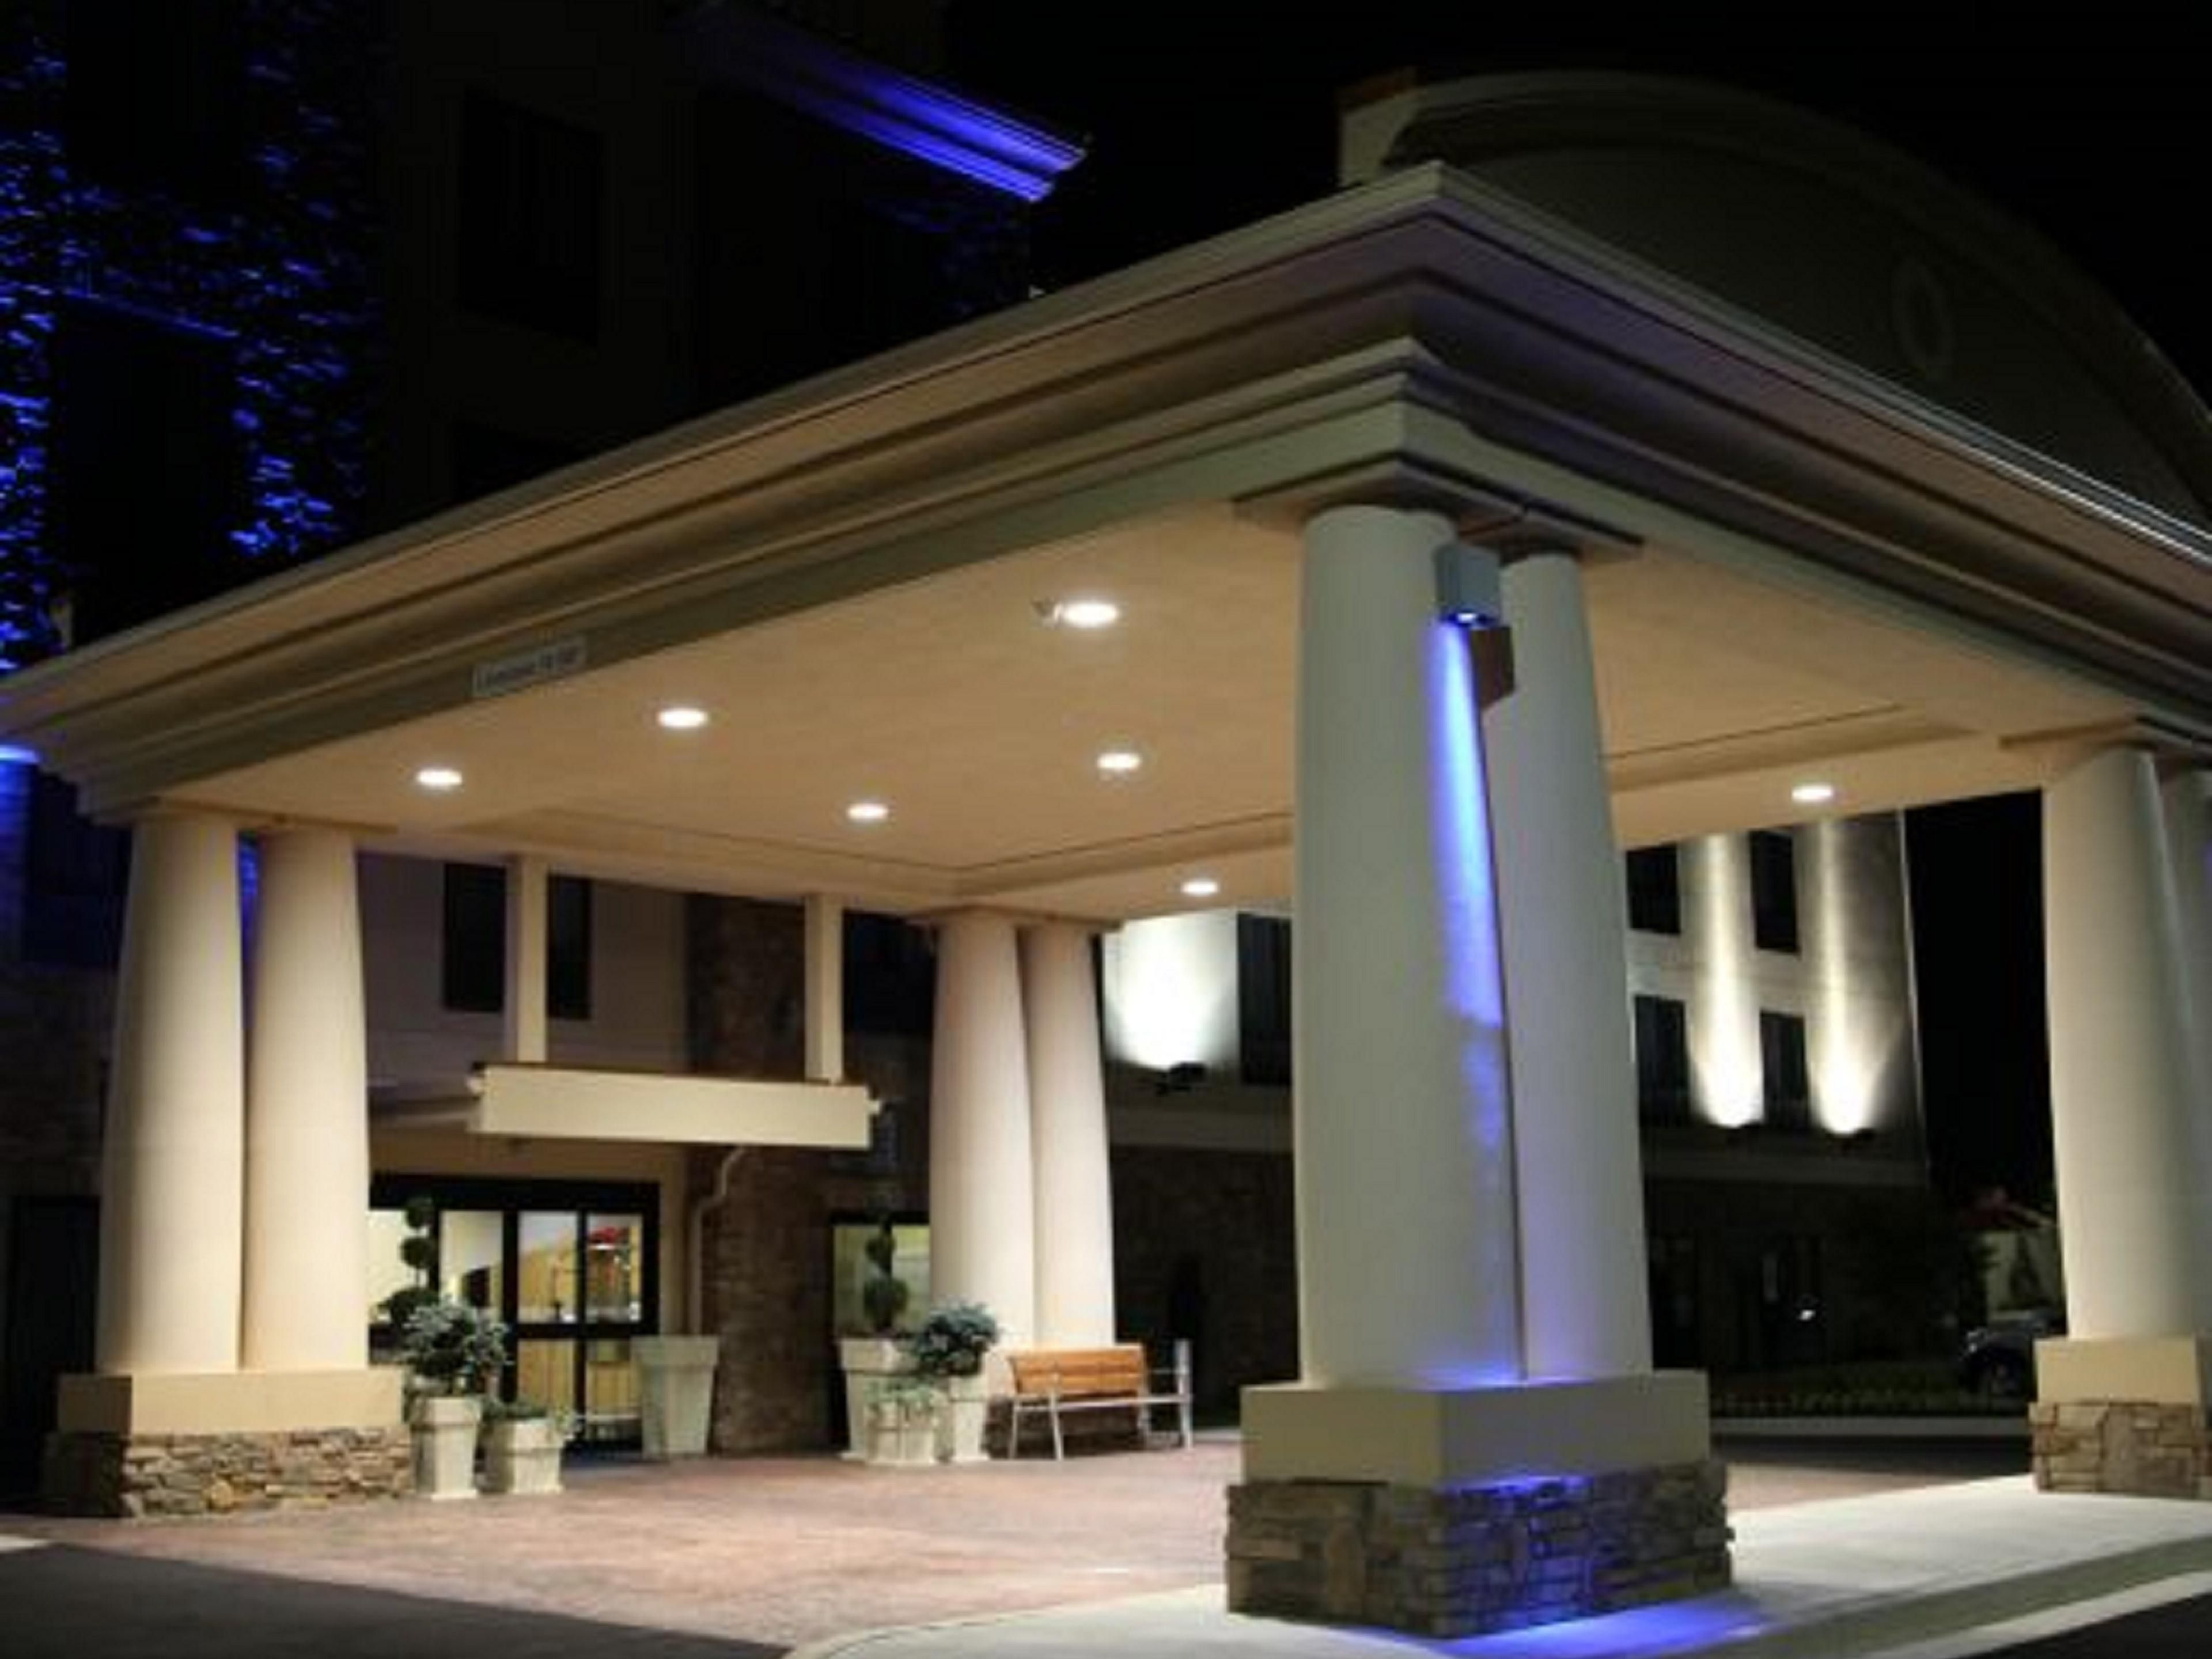 Welcome to the Holiday Inn Express & Suites Huntsville Airport